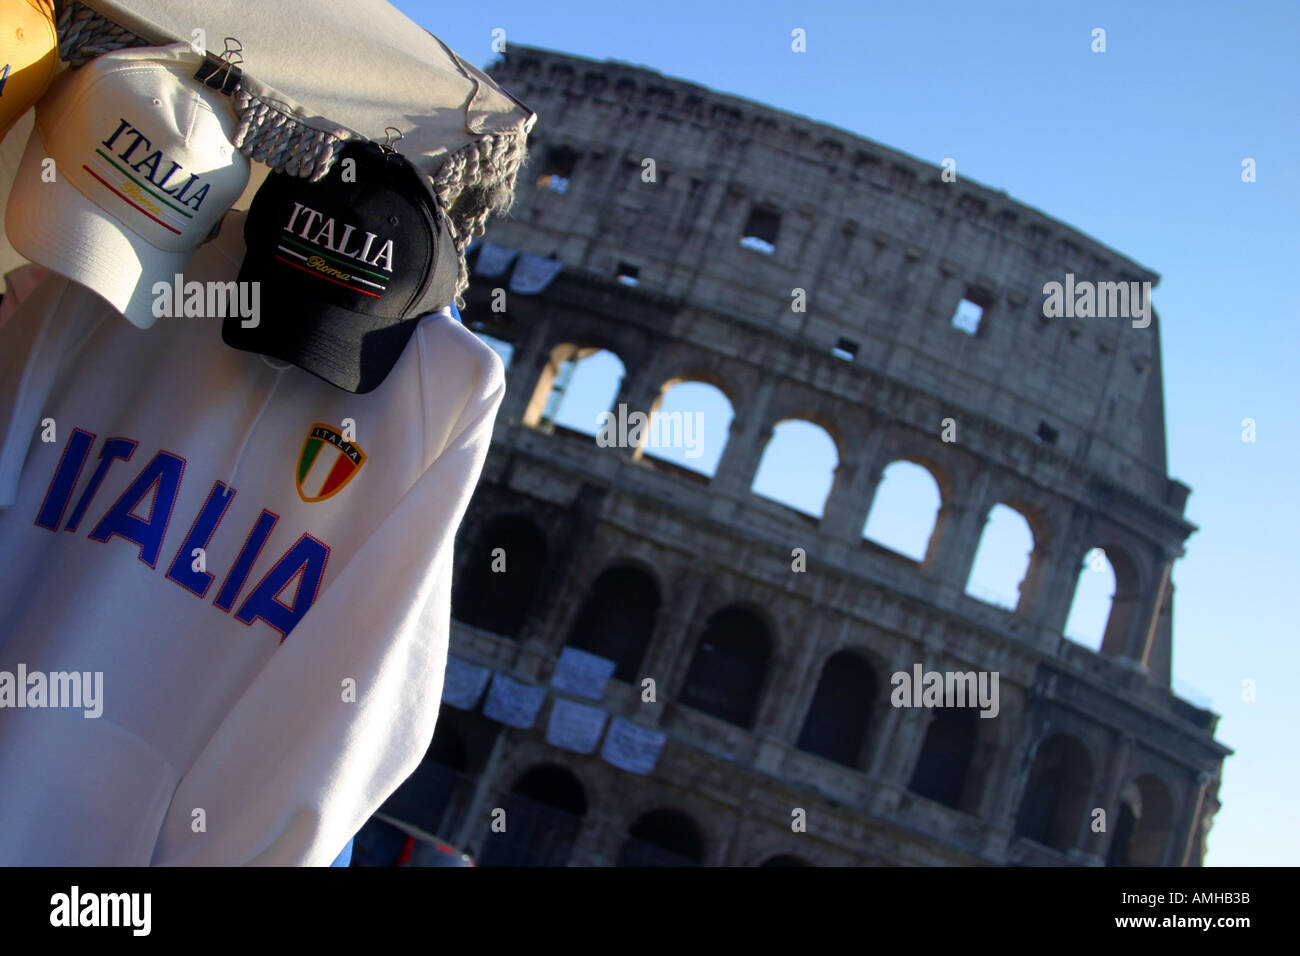 Commercialism by Rome's Colosseum - Stock Image